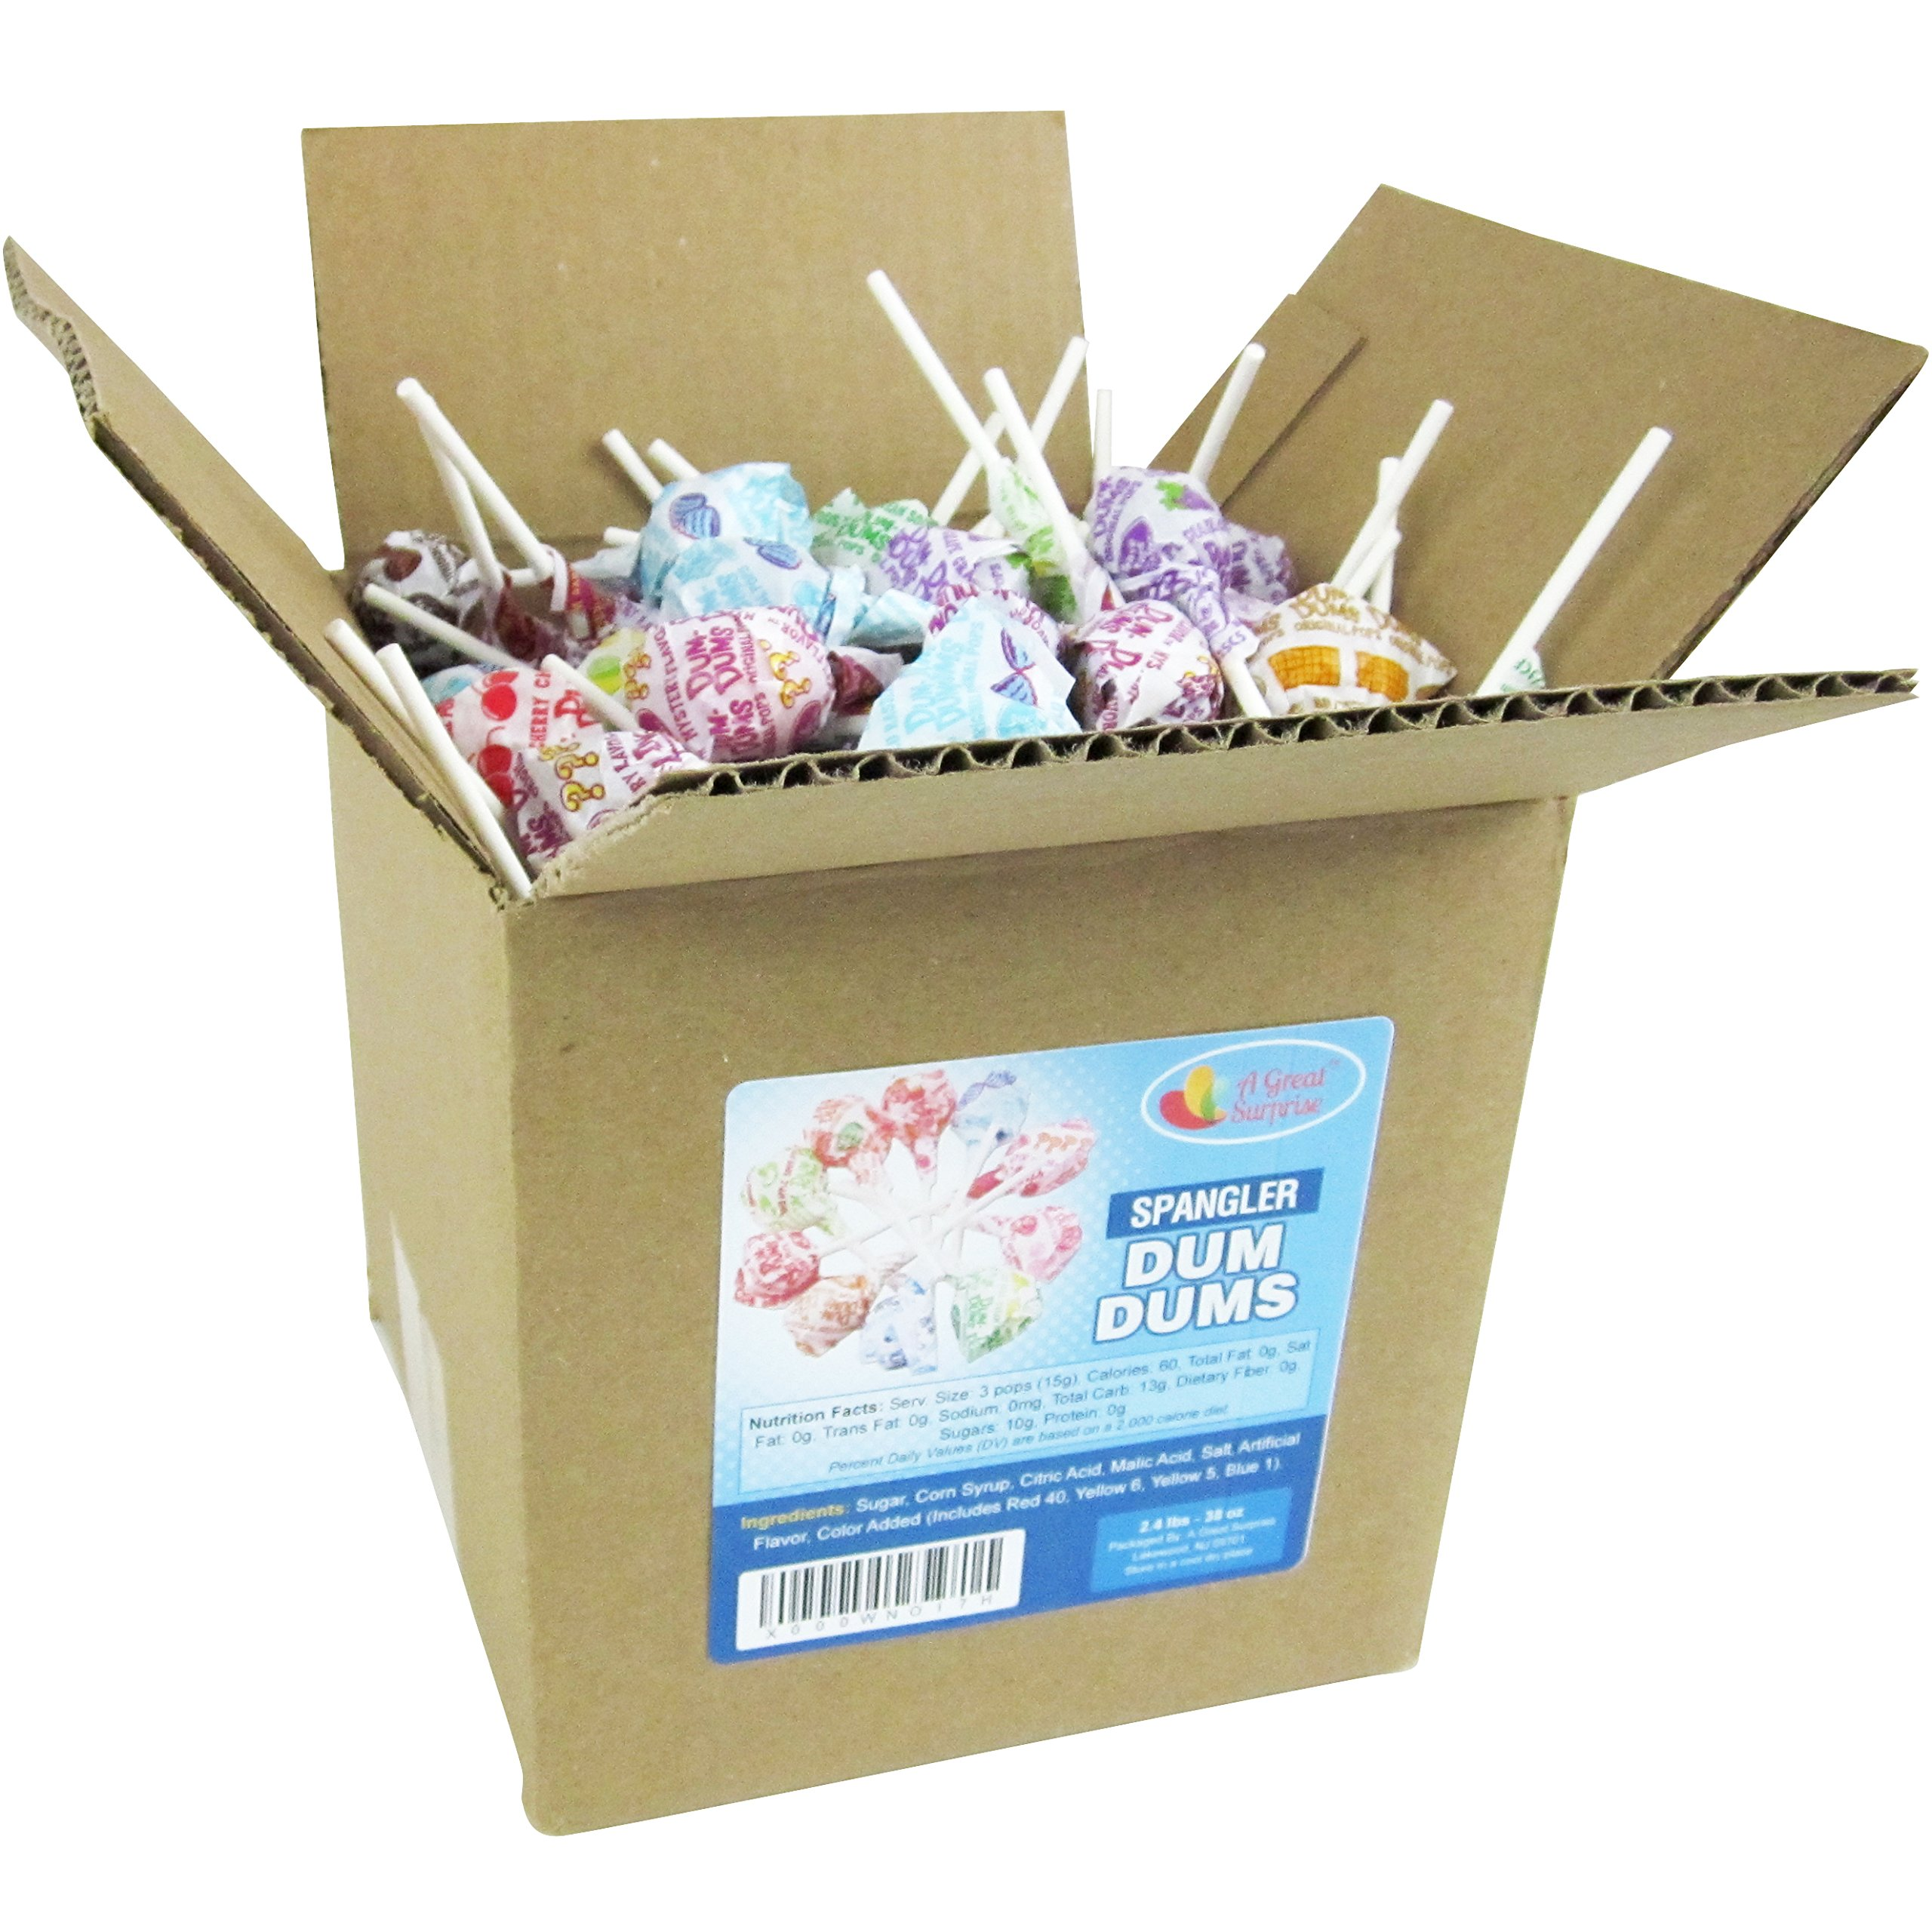 Dum Dums Pops by Spangler, Assorted Flavors Lollipops in 6x6x6 Box Bulk Candy, 2.4 lbs. - 38 oz. by Dum Dums (Image #3)